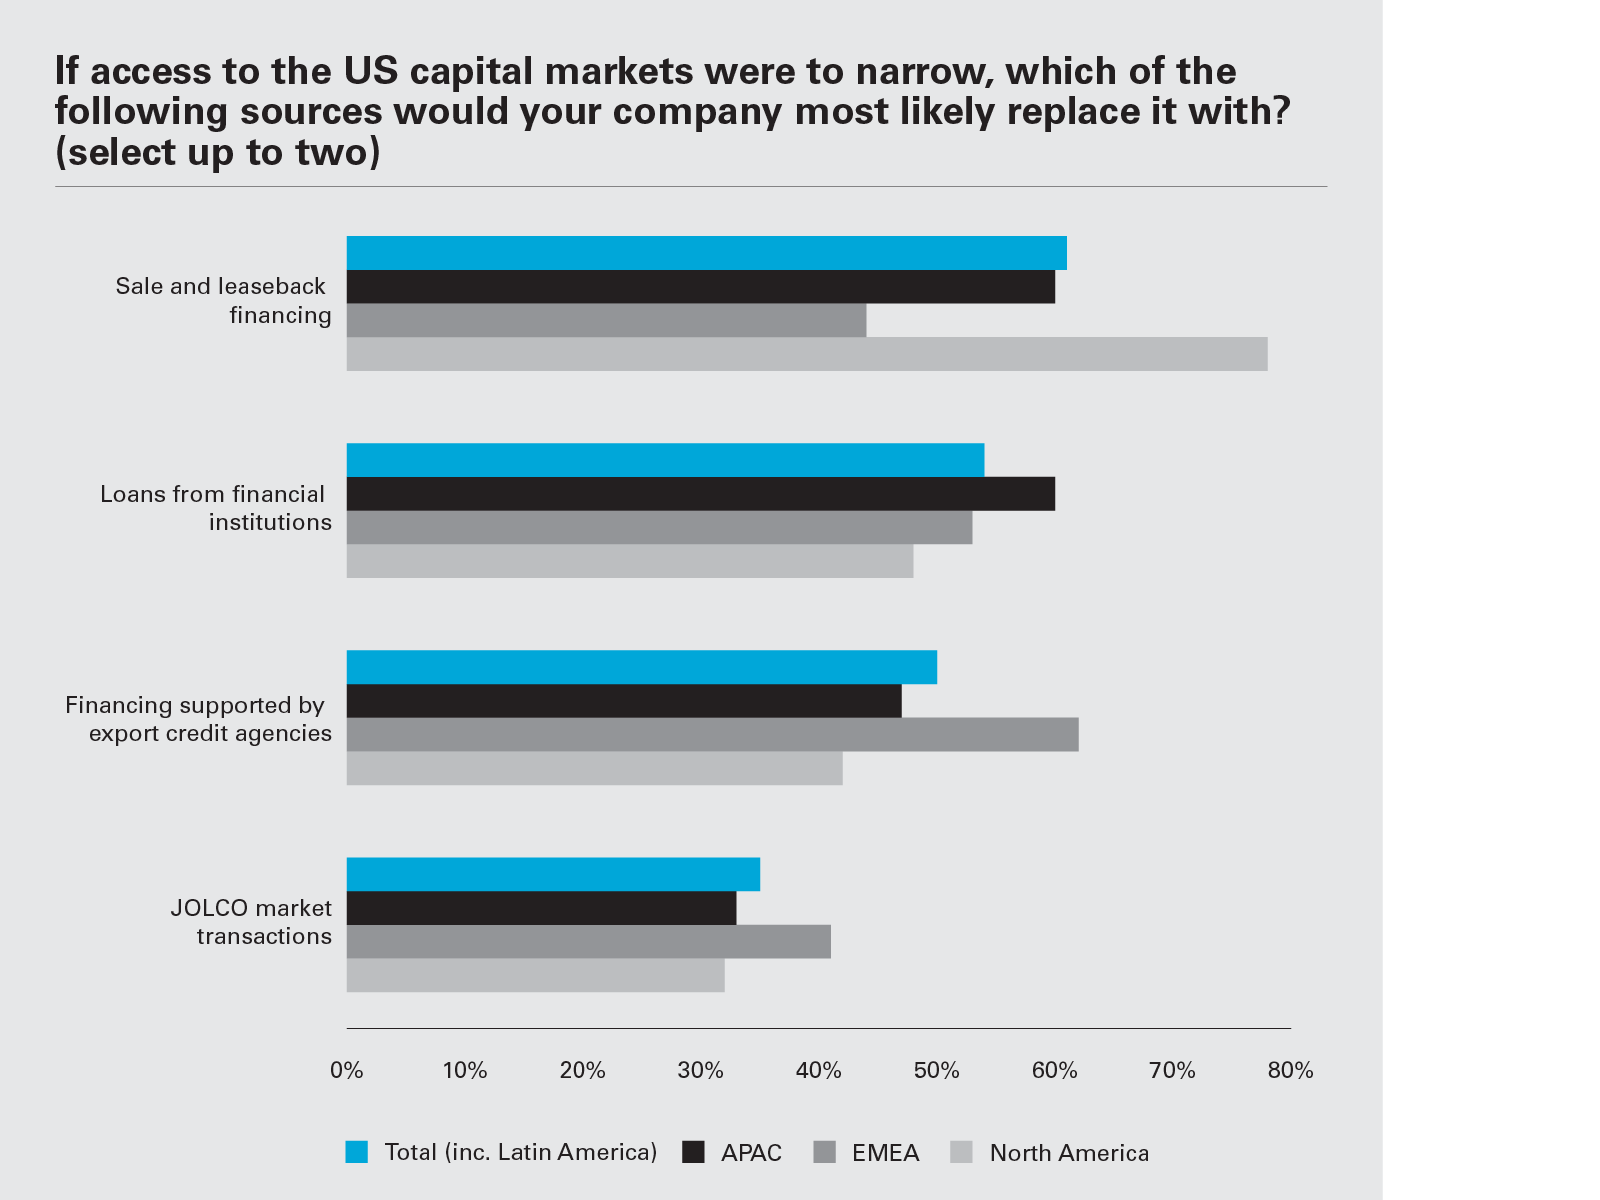 If access to the US capital markets were to narrow, which of the following sources would your company most likely replace it with? (Graph PNG)